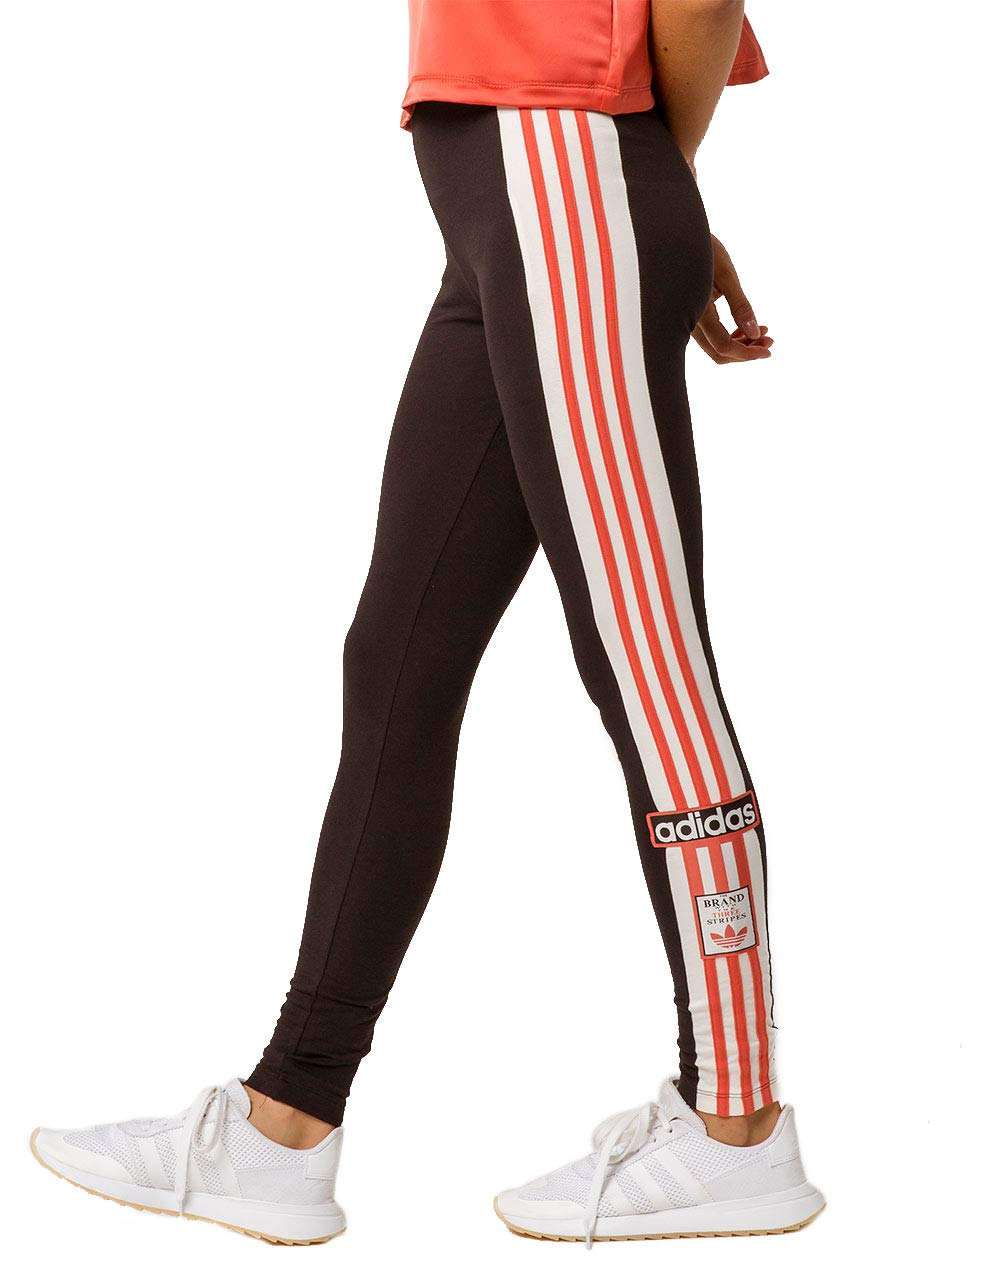 Women's Adibreak Leggings